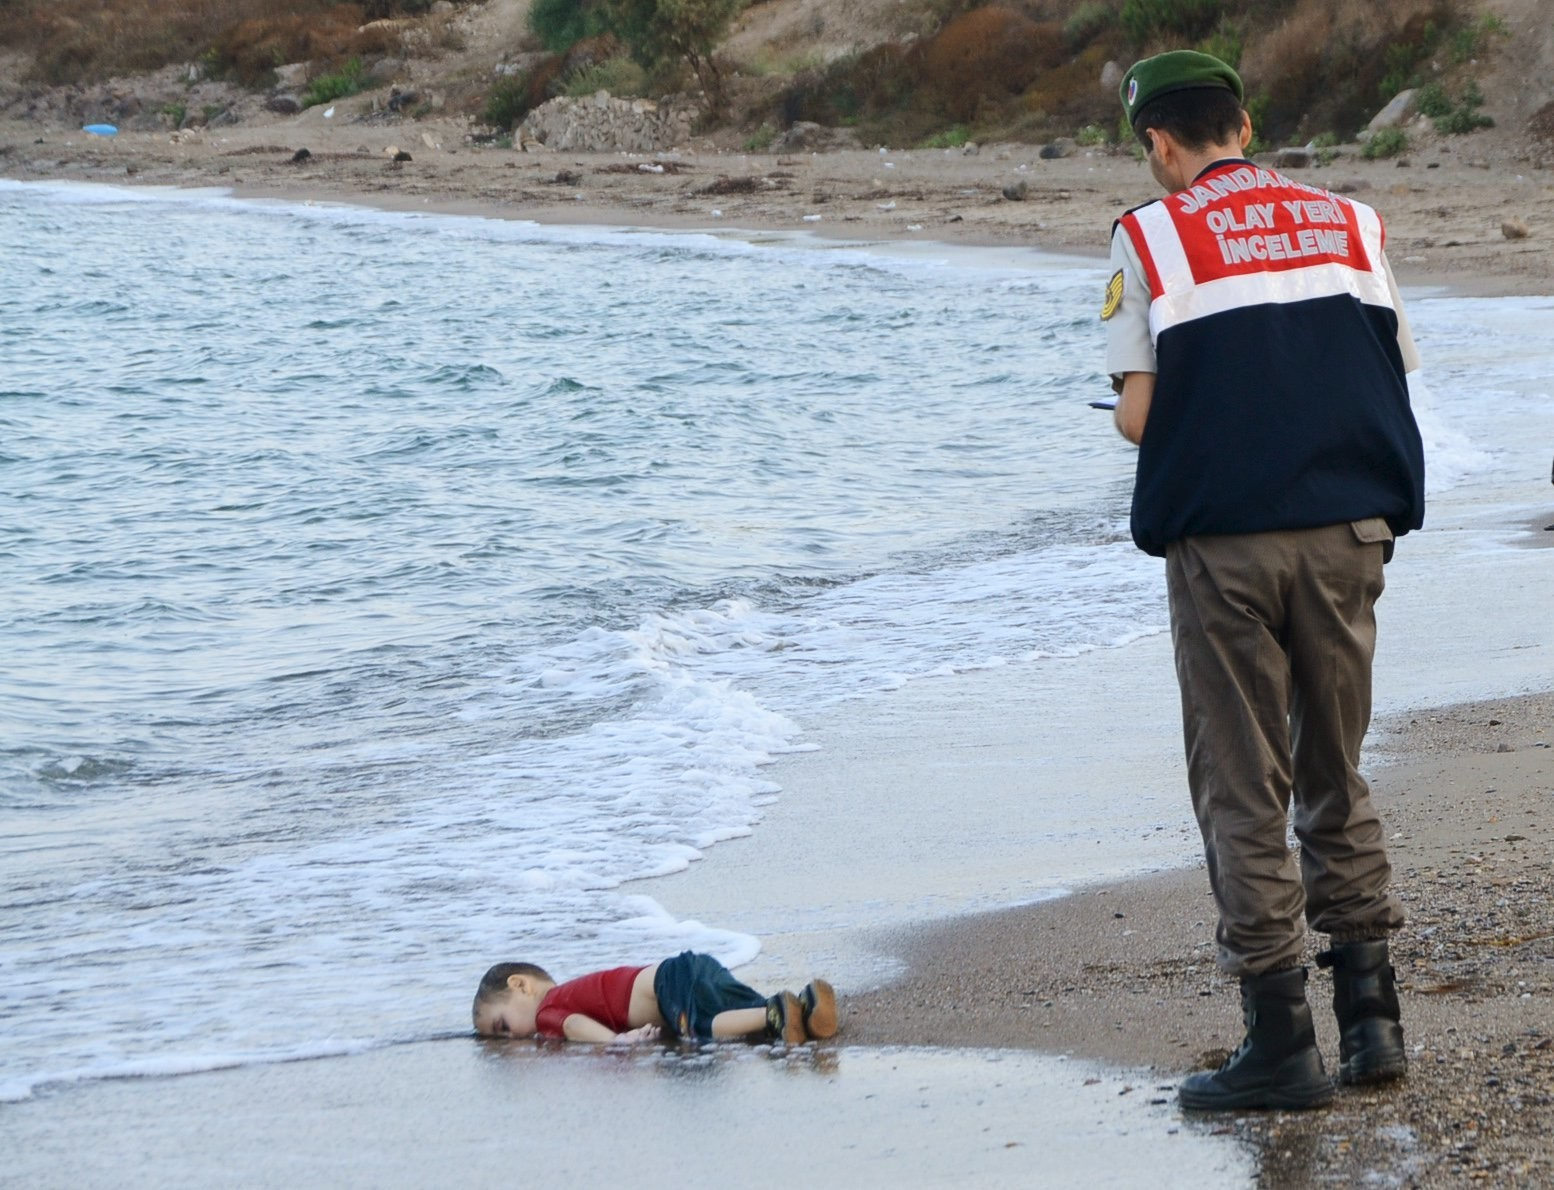 ATTENTION EDITORS - VISUAL COVERAGE OF SCENES OF DEATH OR INJURY A Turkish gendarmerie stands next to a young migrant, who drowned in a failed attempt to sail to the Greek island of Kos, as he lies on the shore in the coastal town of Bodrum, Turkey, September 2, 2015. At least 11 migrants believed to be Syrians drowned as two boats sank after leaving southwest Turkey for the Greek island of Kos, Turkey's Dogan news agency reported on Wednesday. It said a boat carrying 16 Syrian migrants had sunk after leaving the Akyarlar area of the Bodrum peninsula, and seven people had died. Four people were rescued and the coastguard was continuing its search for five people still missing. Separately, a boat carrying six Syrians sank after leaving Akyarlar on the same route. Three children and one woman drowned and two people survived after reaching the shore in life jackets.  REUTERS/Nilufer Demir/DHA  TPX IMAGES OF THE DAY  ATTENTION EDITORS - NO SALES. NO ARCHIVES. FOR EDITORIAL USE ONLY. NOT FOR SALE FOR MARKETING OR ADVERTISING CAMPAIGNS. TEMPLATE OUT. THIS IMAGE HAS BEEN SUPPLIED BY A THIRD PARTY. THIS PICTURE WAS PROCESSED BY REUTERS TO ENHANCE QUALITY. AN UNPROCESSED VERSION WILL BE PROVIDED SEPARATELY. TURKEY OUT. NO COMMERCIAL OR EDITORIAL SALES IN TURKEY.